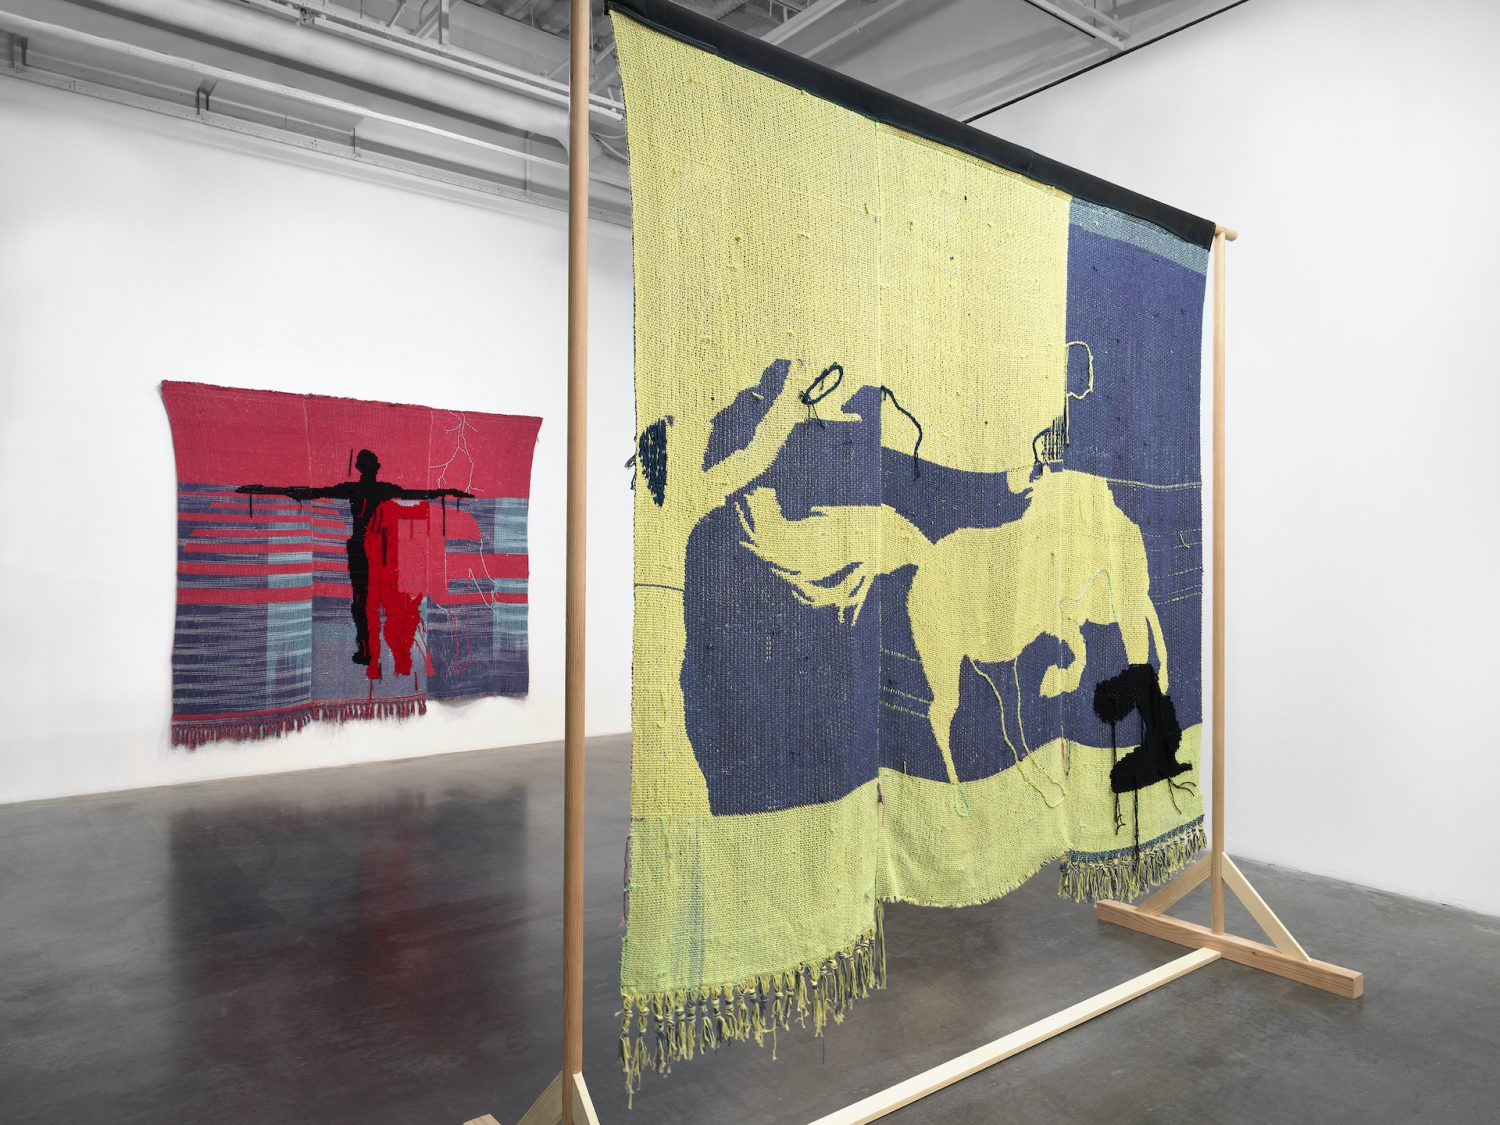 Diedrick Brackens: darling divined, 2019. Exhibition view. Woven tapestry featuring figures of humans and horses.